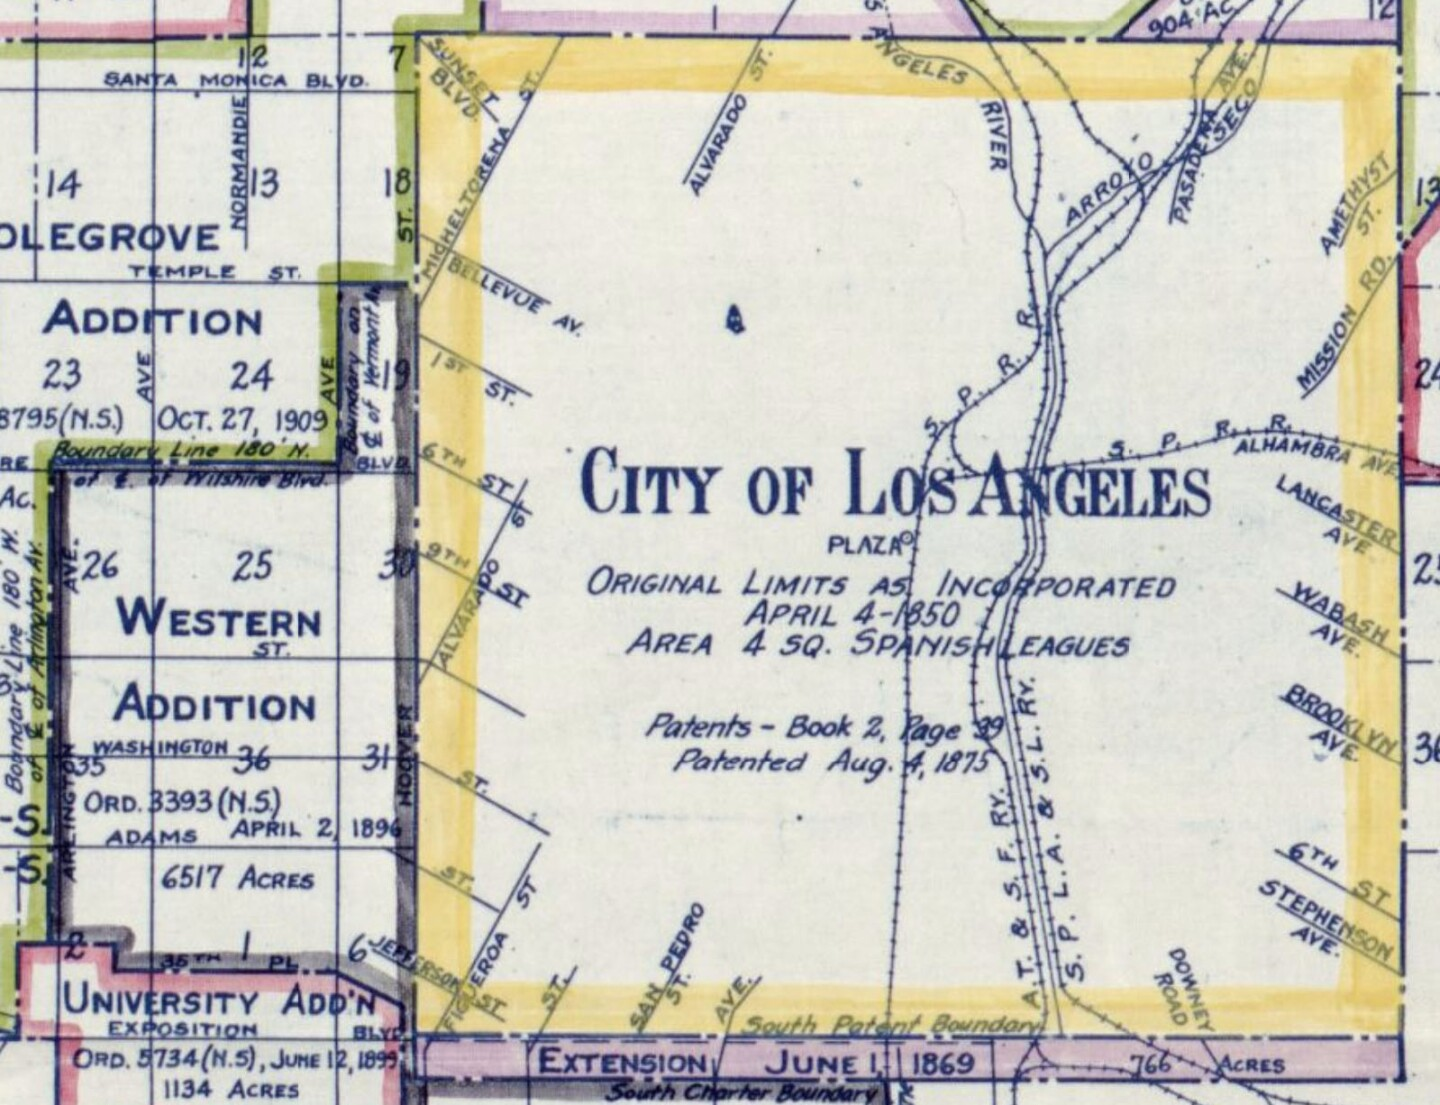 Potion of map showing Western Addition of territory annexed to City of Los Angeles